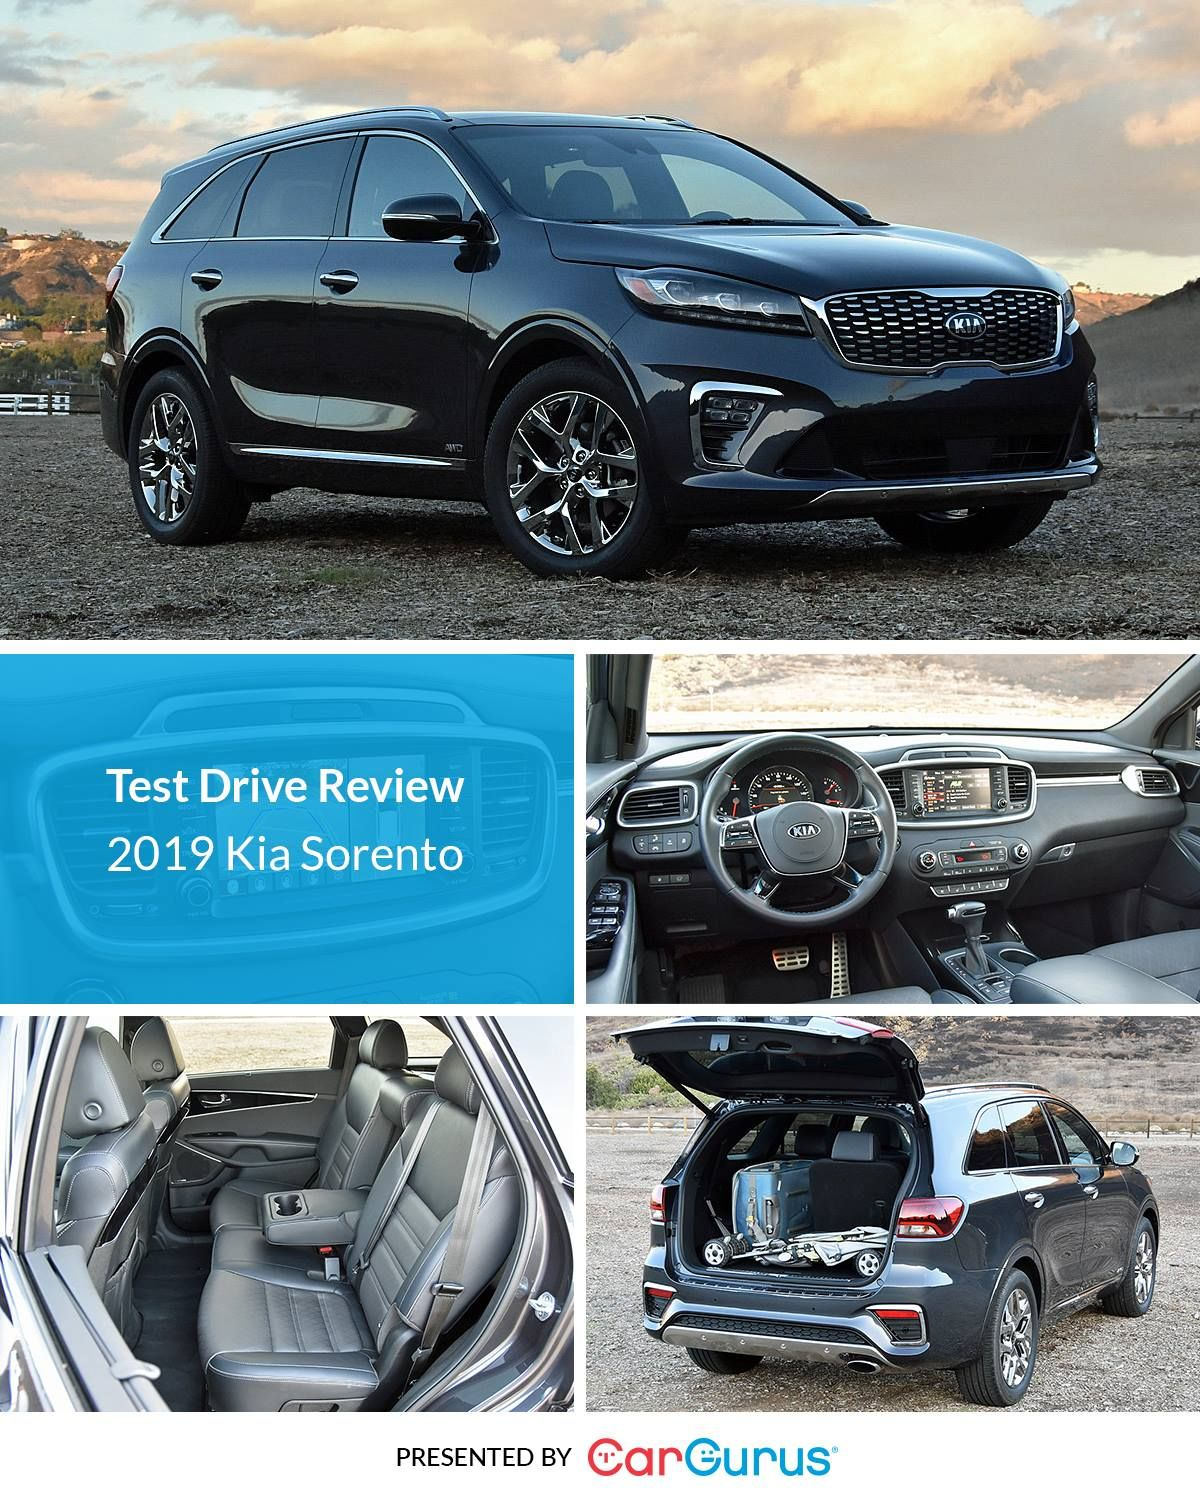 Pin On Test Drive Reviews